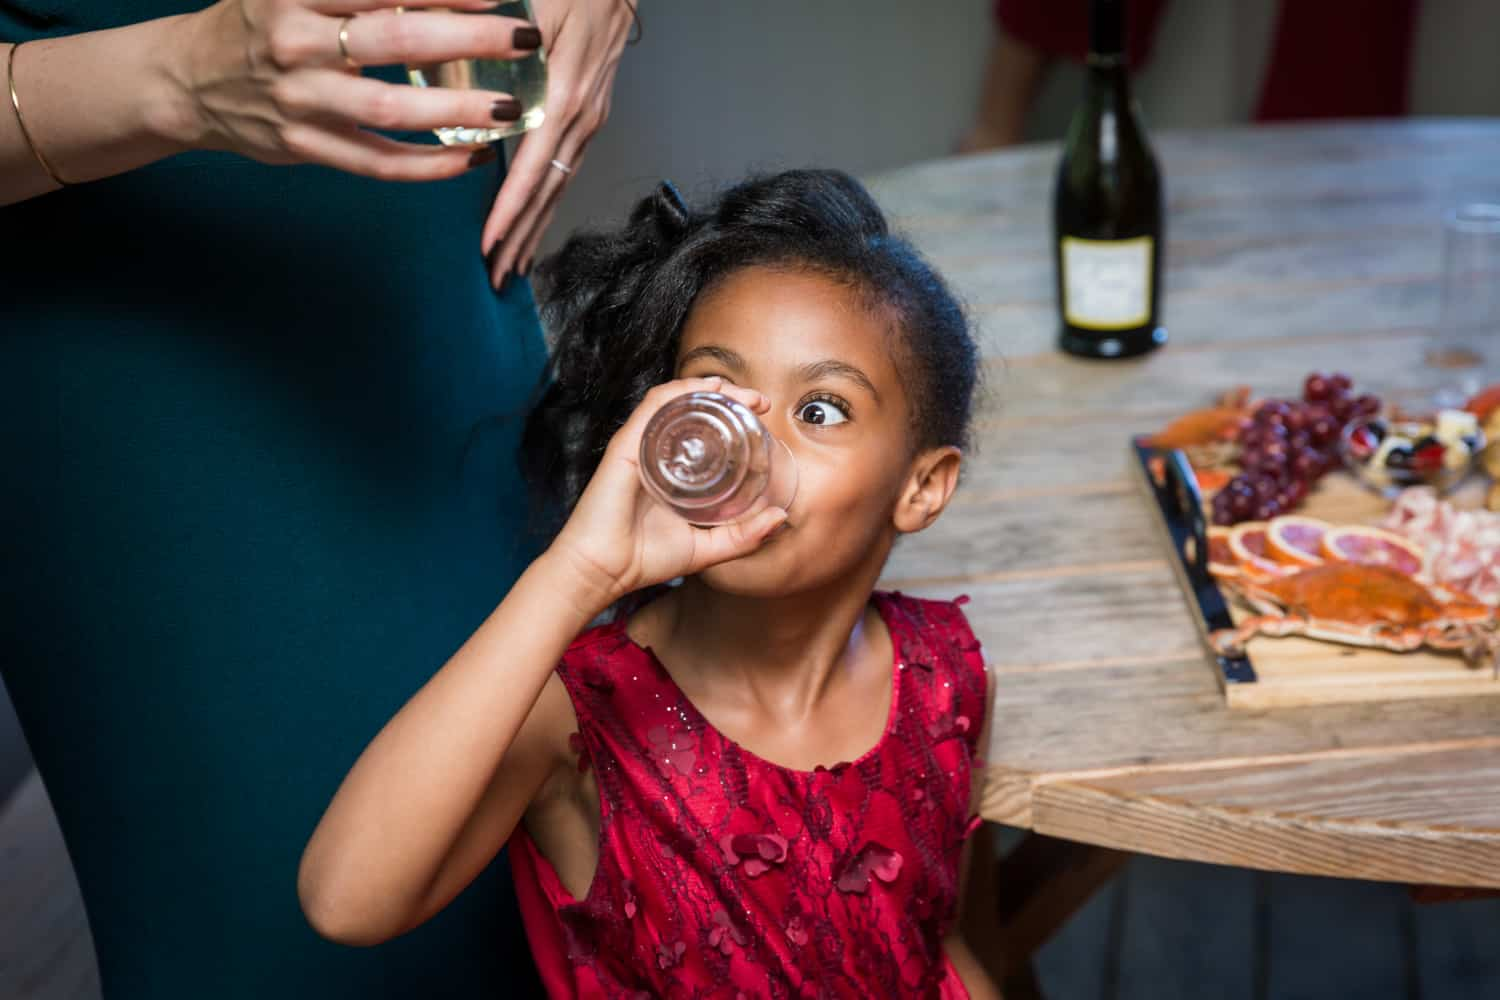 Little girl drinking from glass during a family reunion portrait